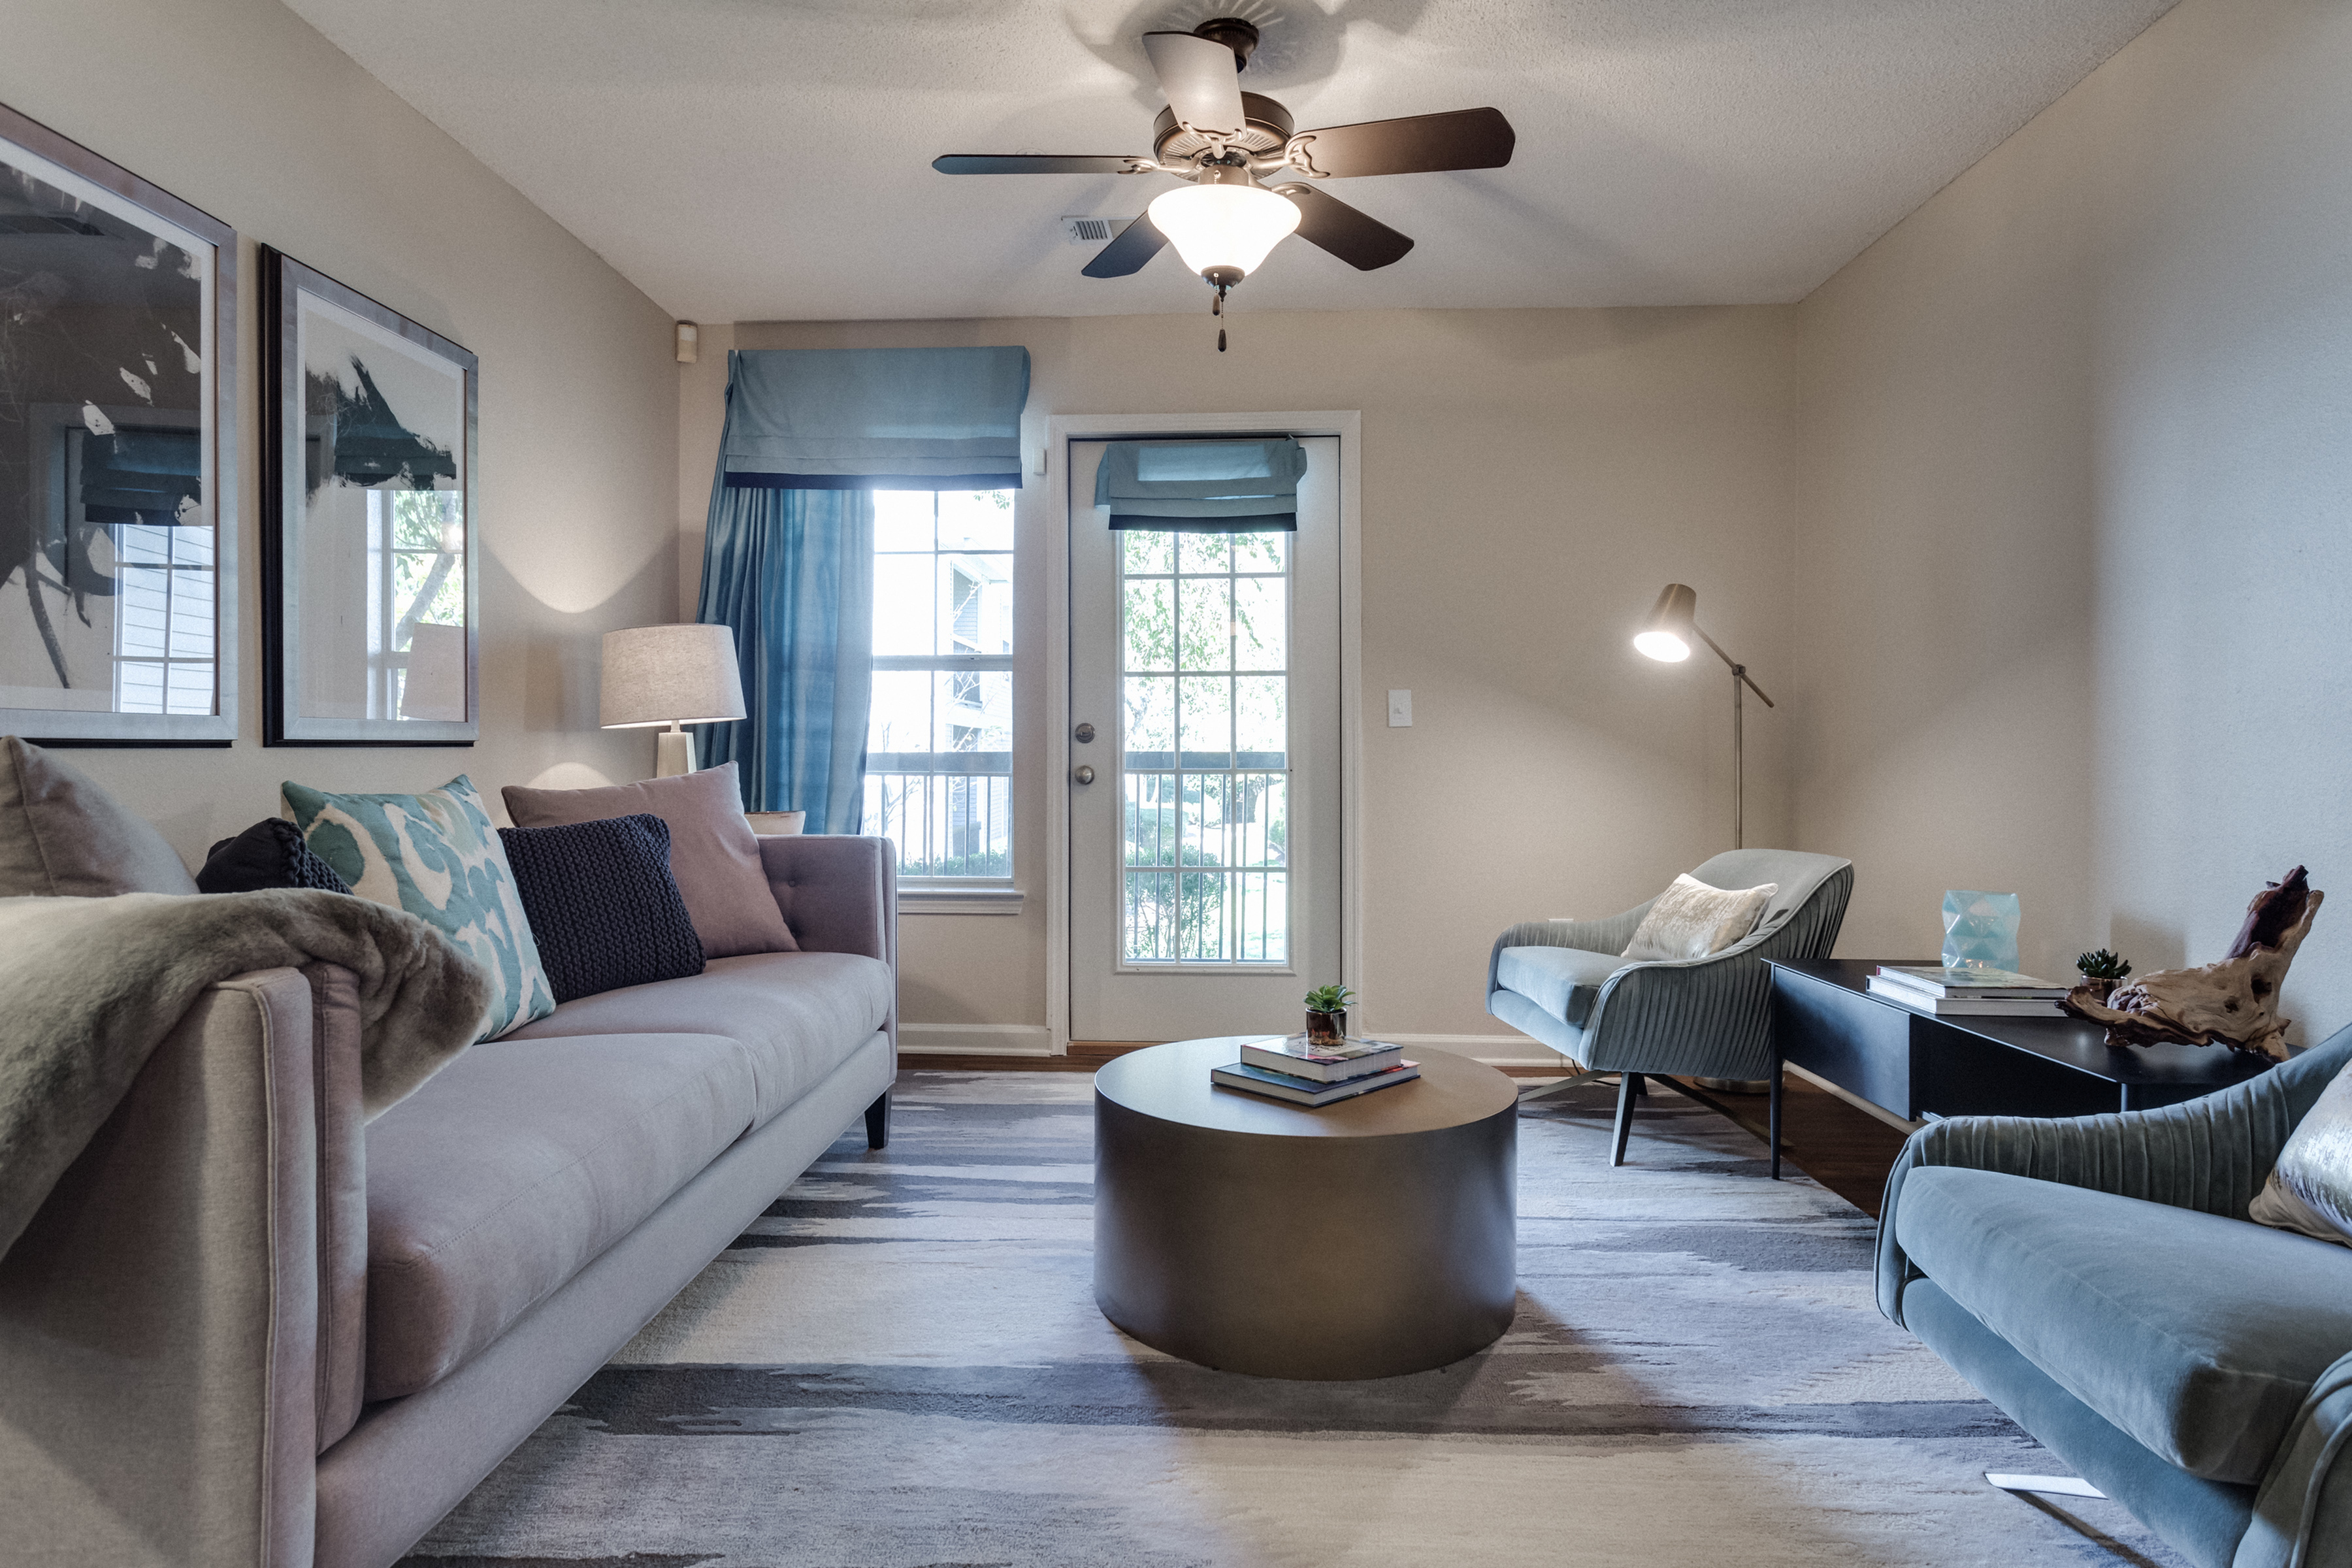 Apartments In Raleigh For Rent Midtown Crossing - Midtown crossing apartments raleigh